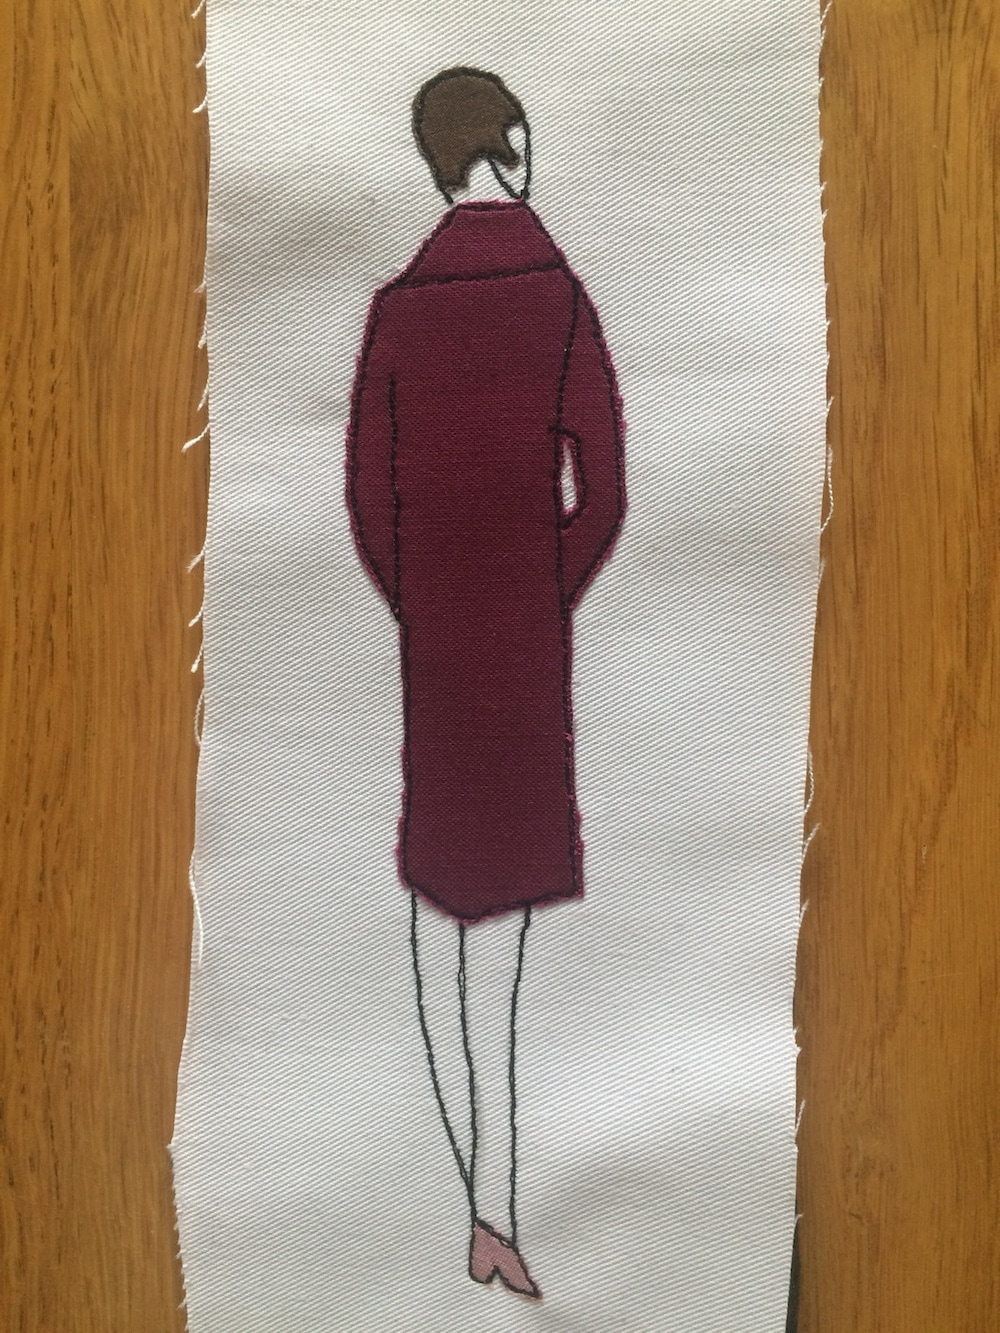 Free Motion Embroidery 1960s woman.jpg